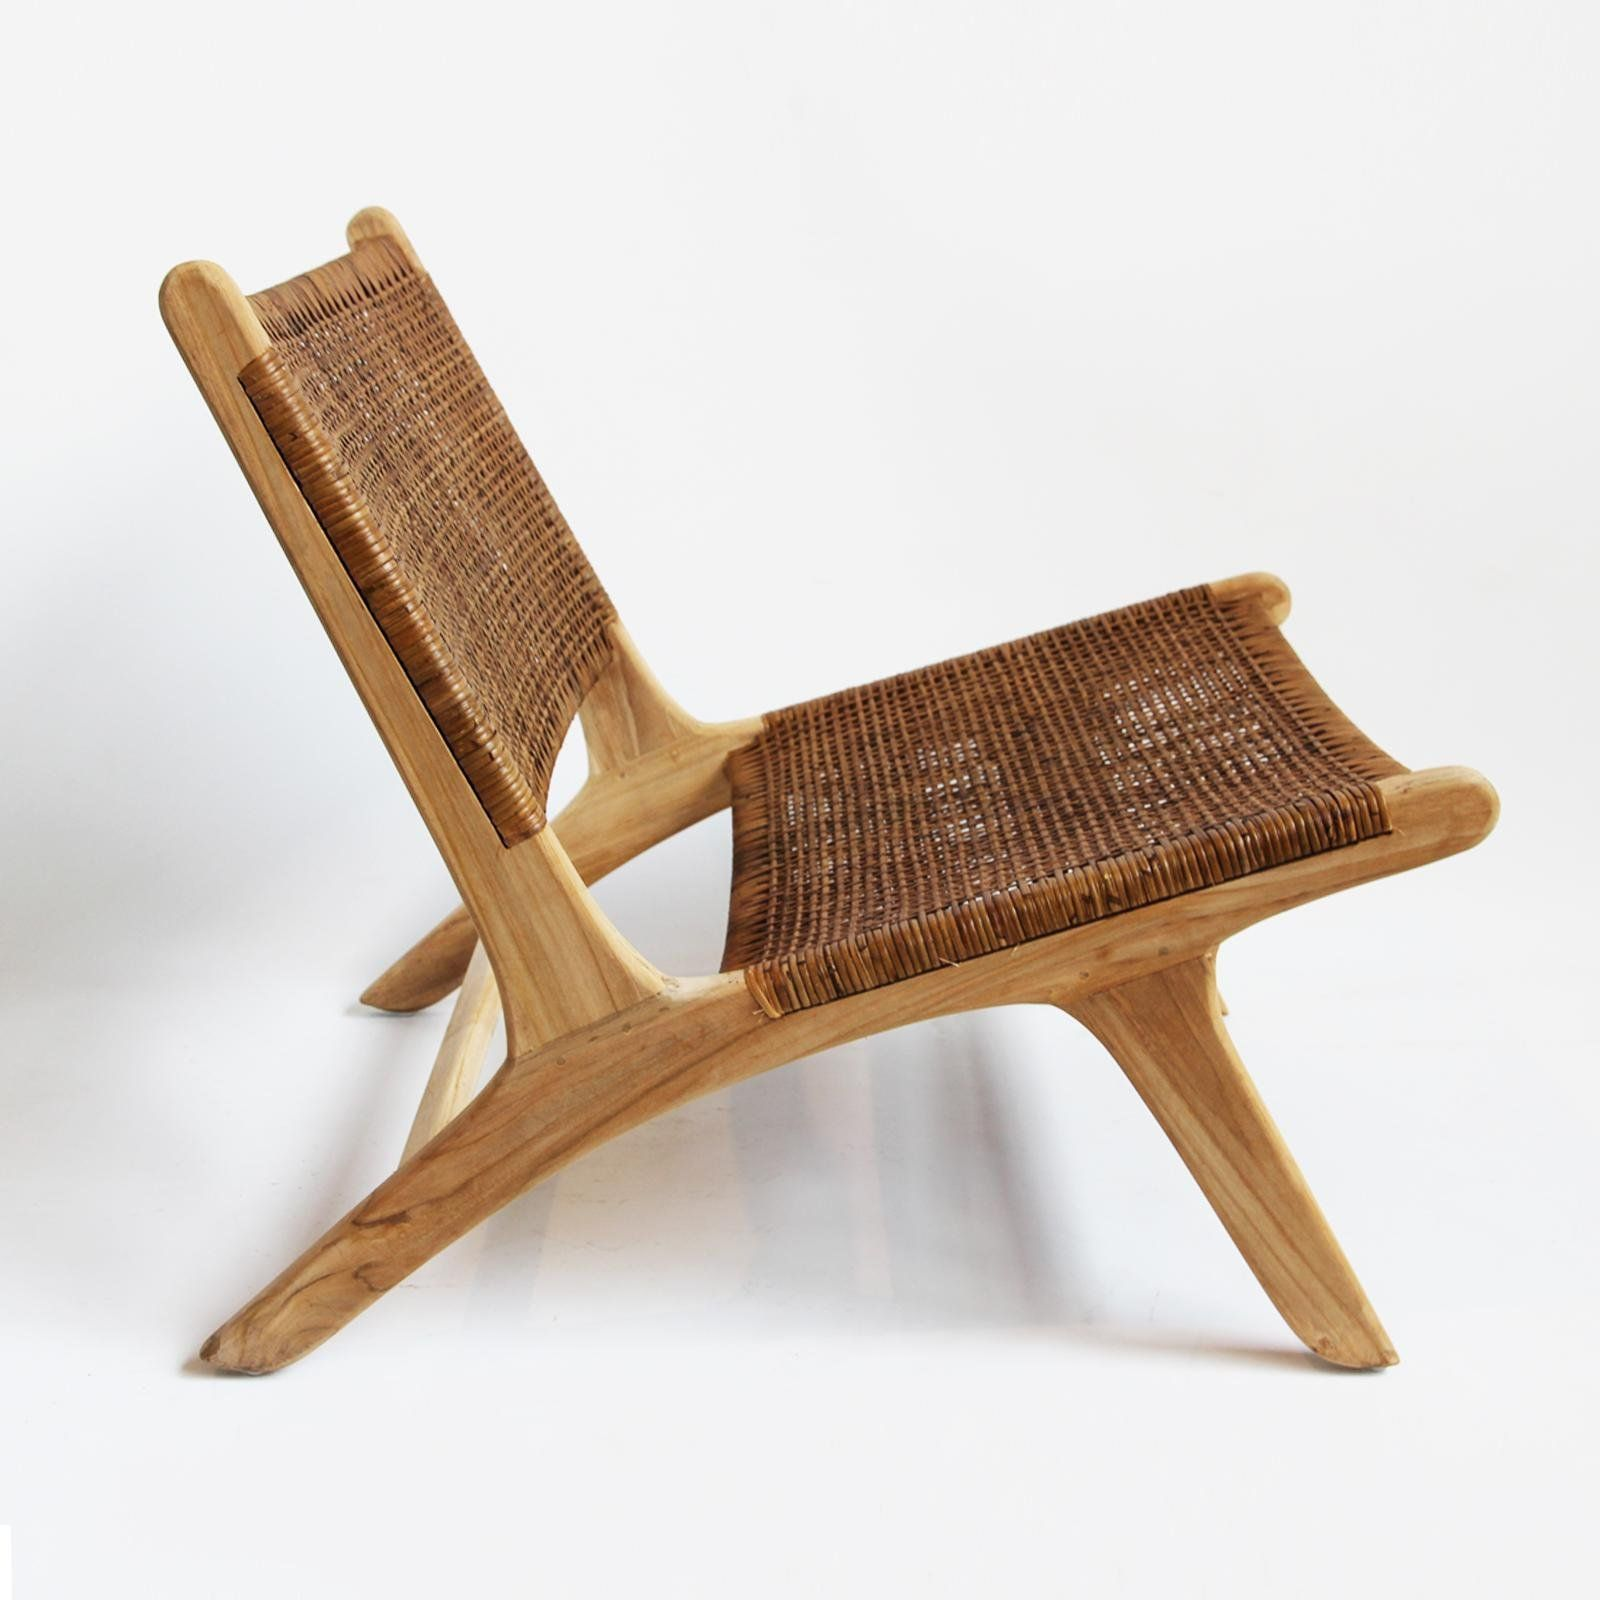 Modern Teak Wicker Easy Chair Image 3 Of 5 Furniture Design Chair Furniture Chair Midcentury Modern Dining Chairs